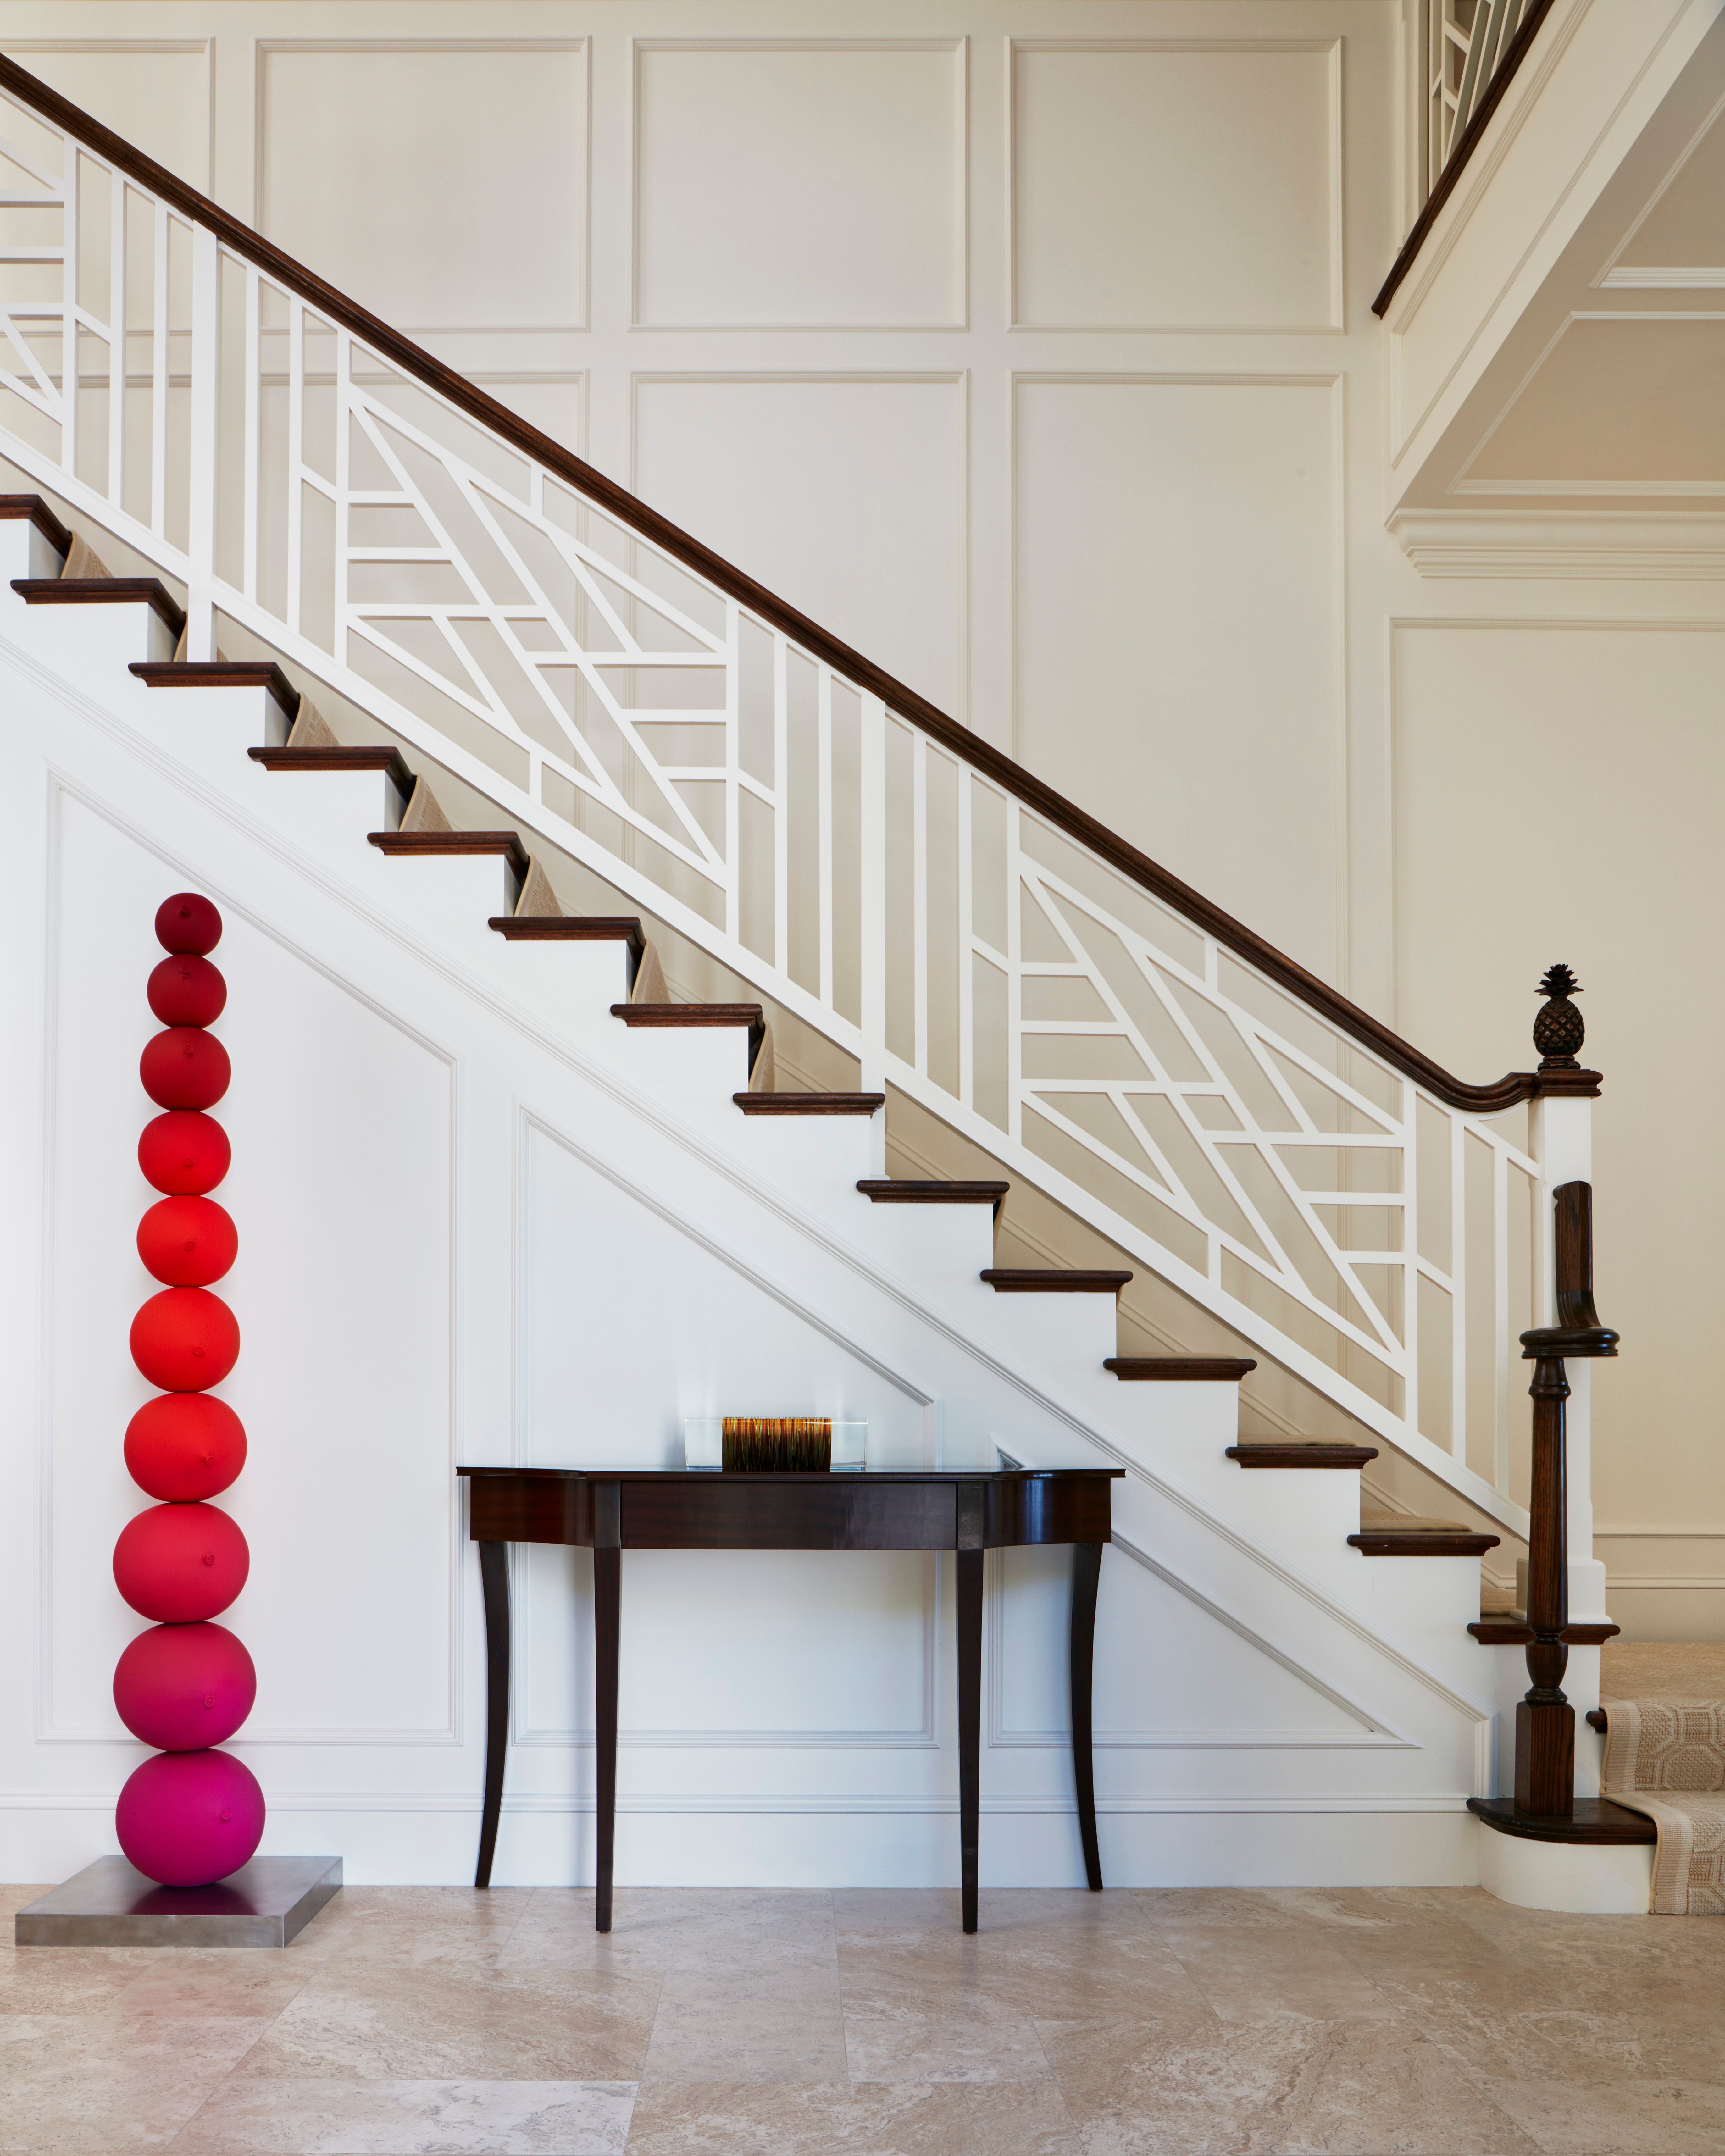 20 Excellent Traditional Staircases Design Ideas: We Love A Bright Pop Of Color #LRIproject